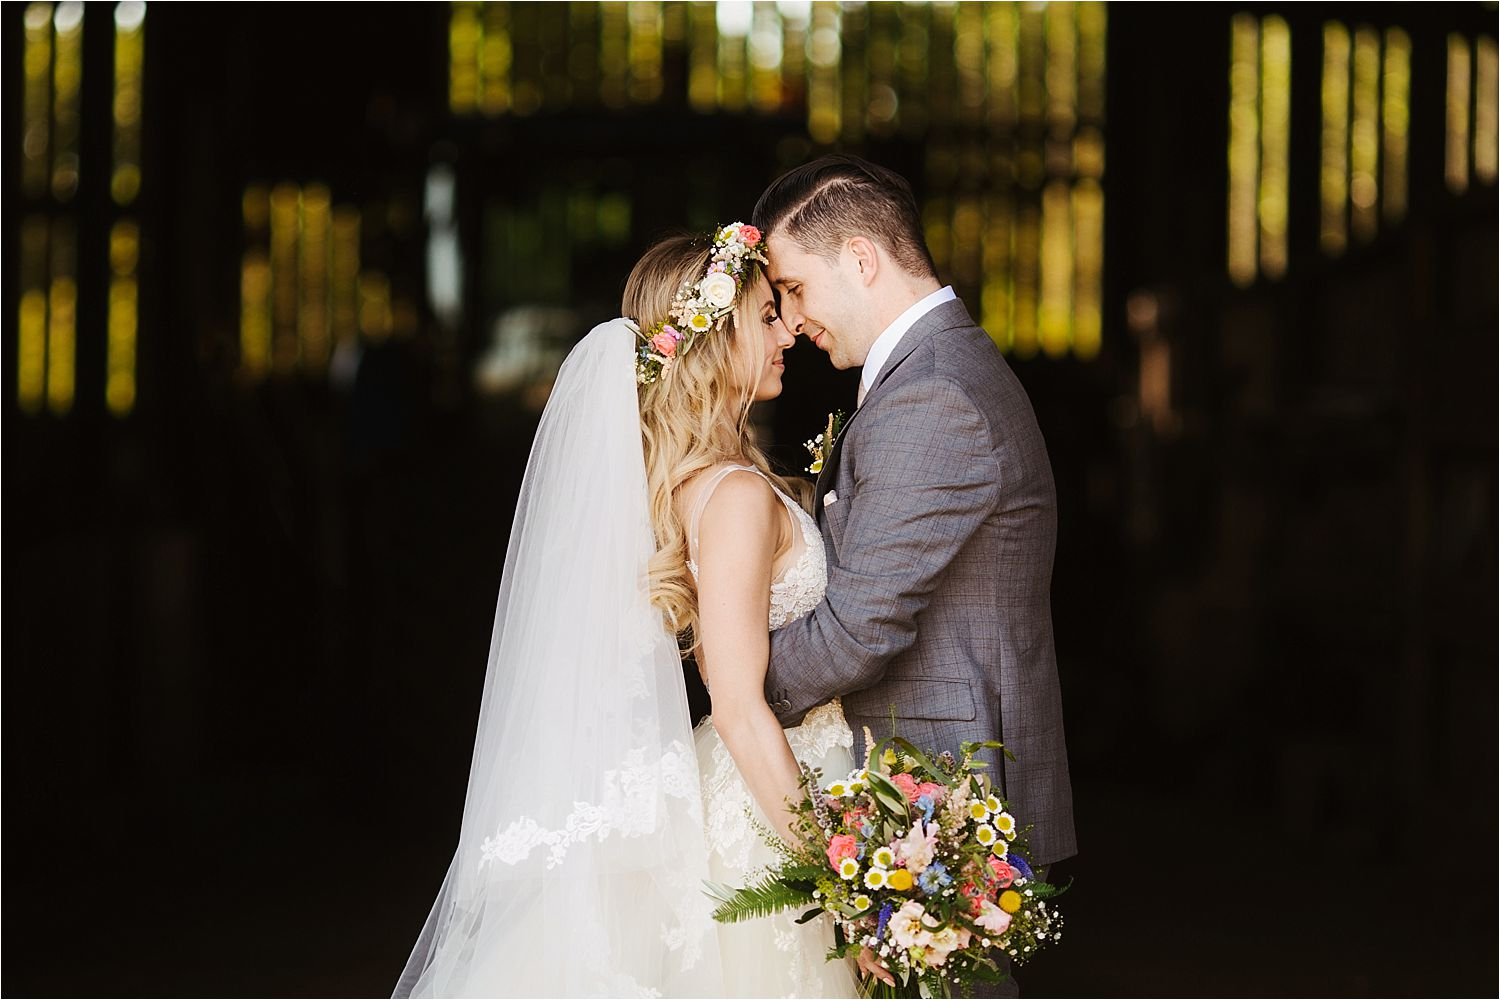 Bride and groom embrace, Flowers by Green Earth Flowers and wedding dress by Lazarro